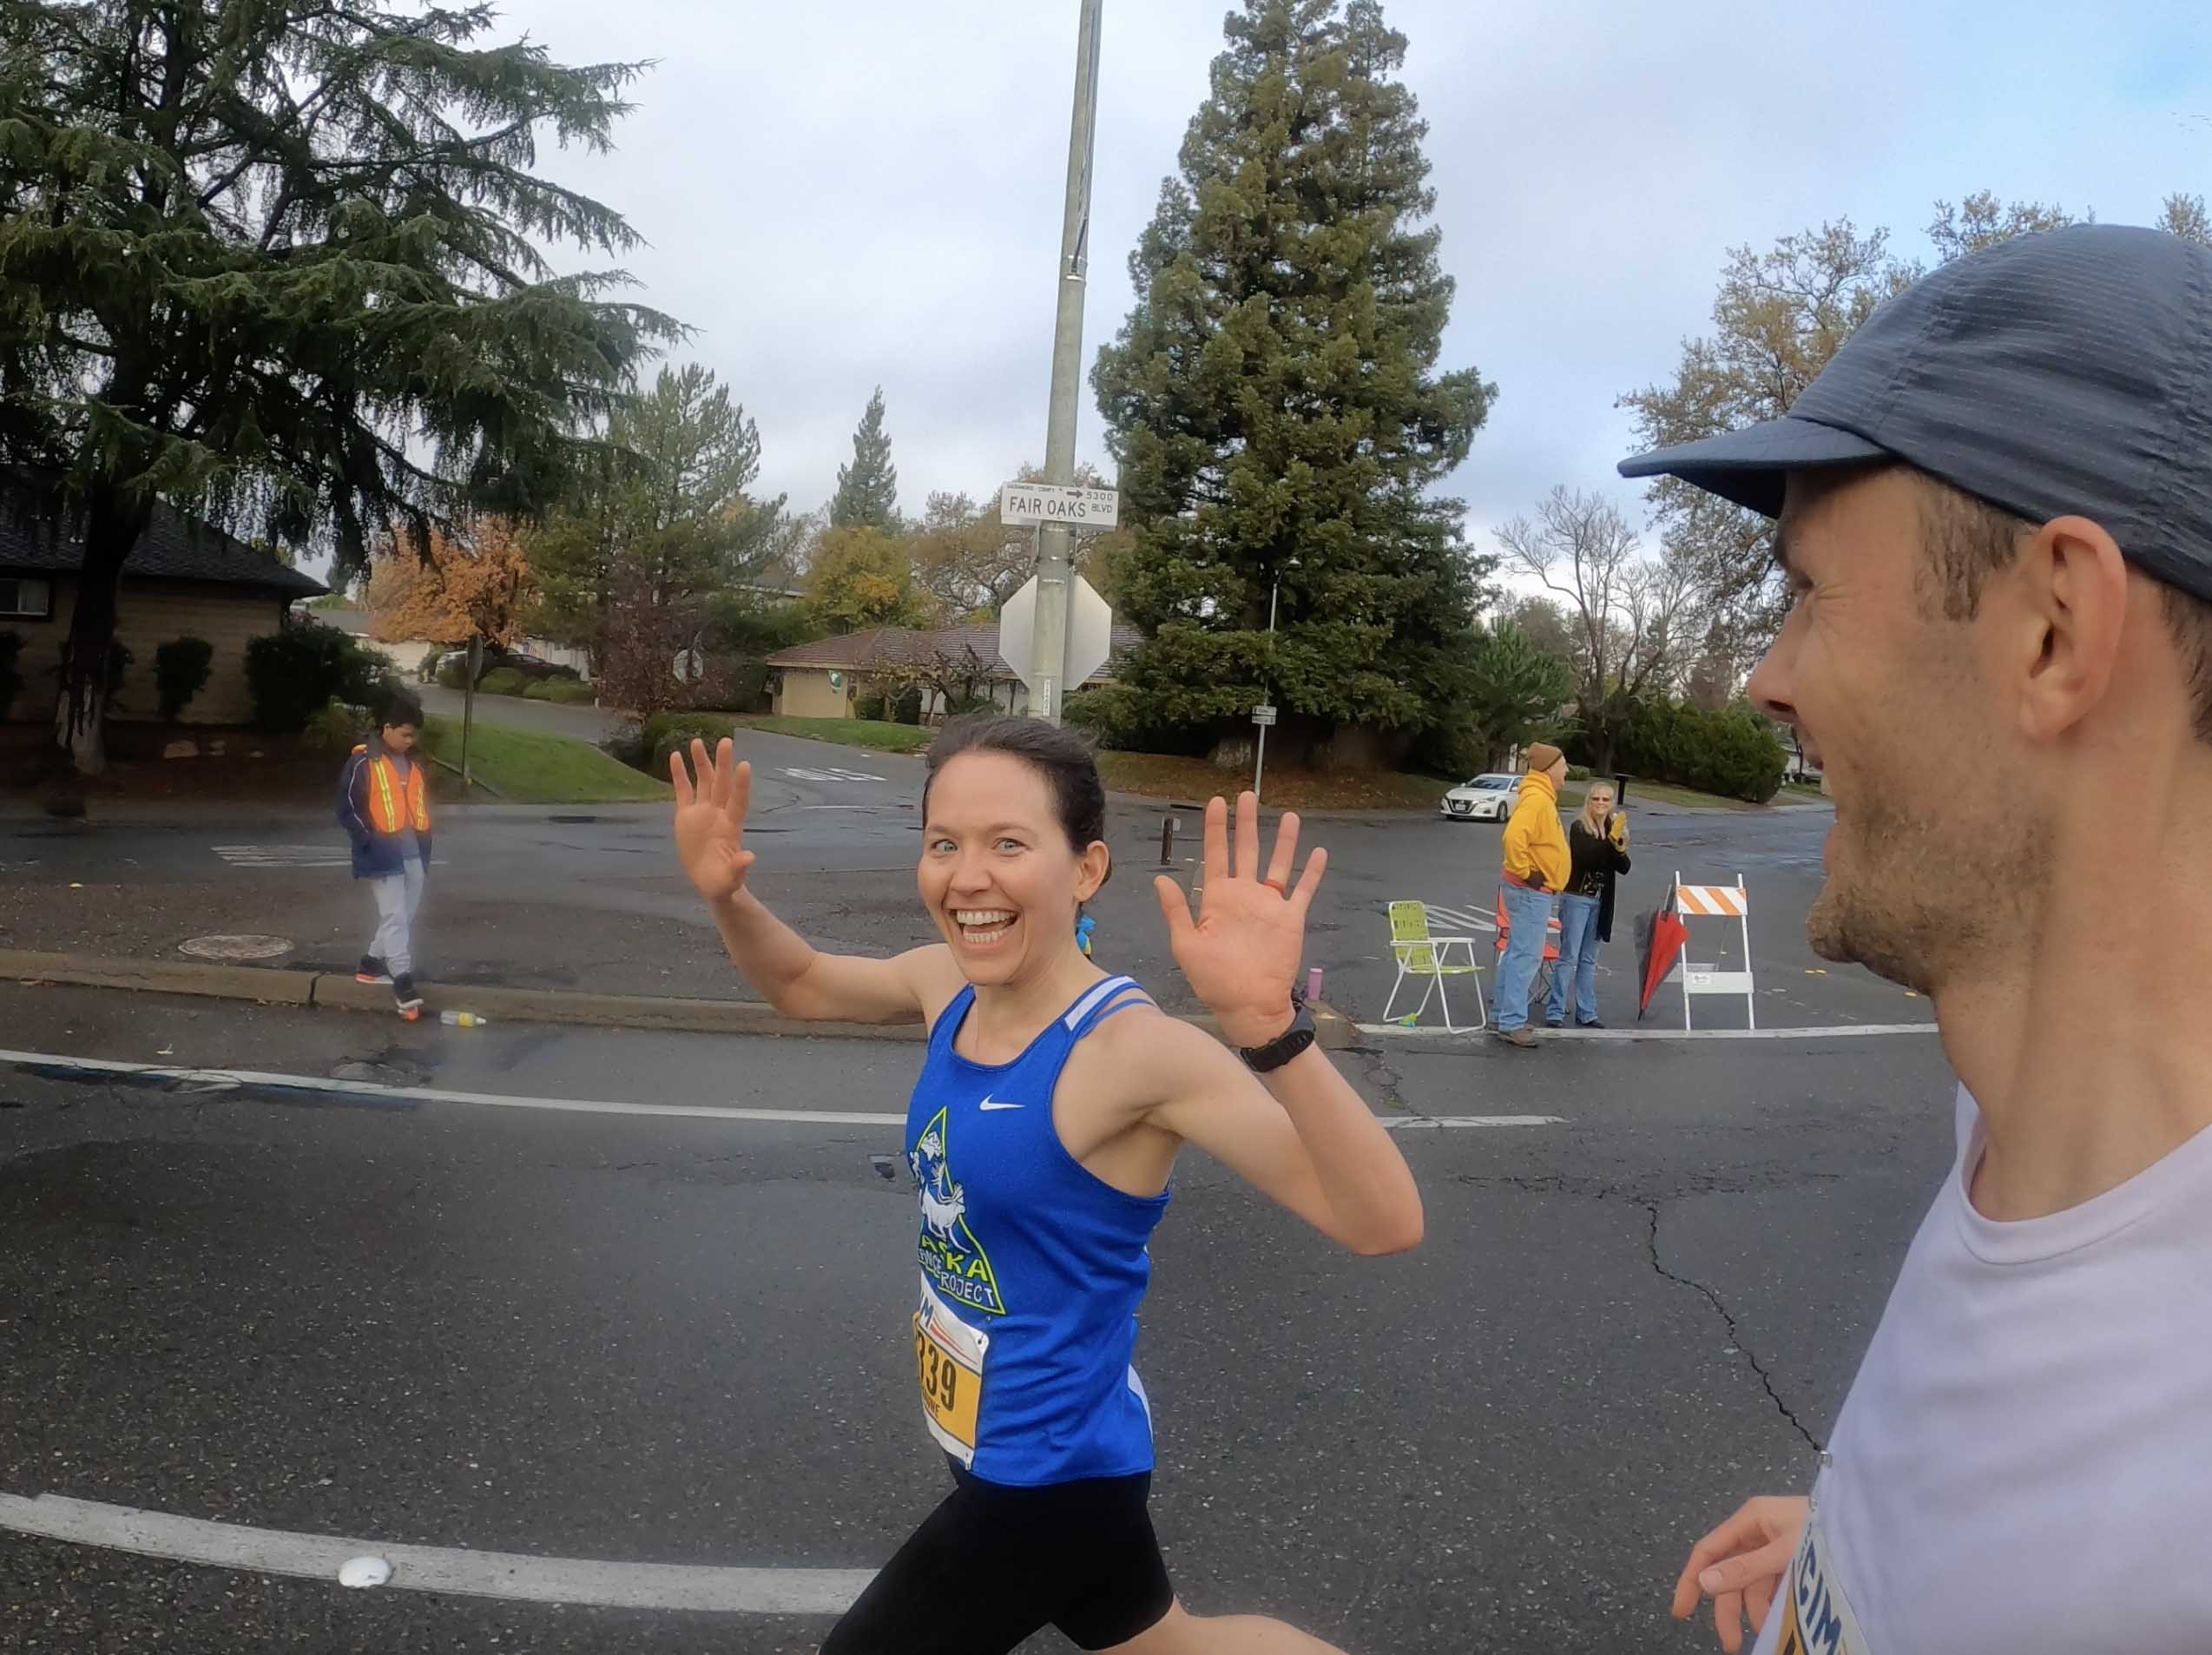 Julianne Dickerson running fast at CIM marathon